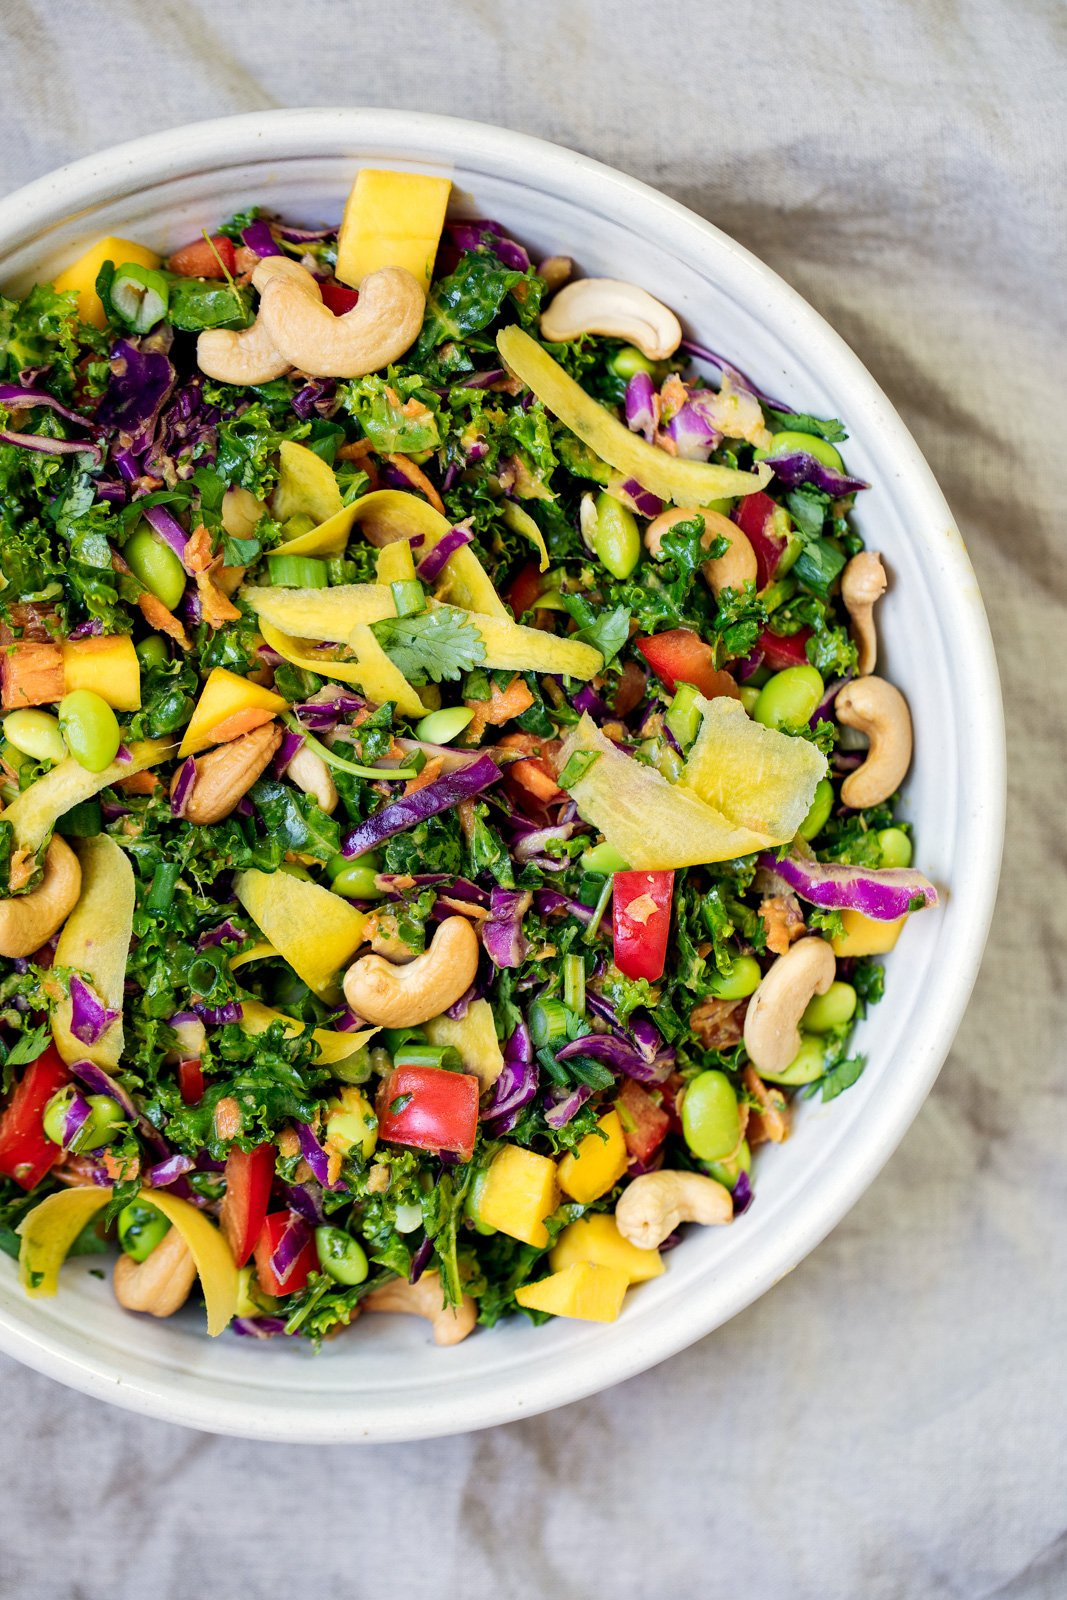 Chopped kale salad with cashews in a white bowl